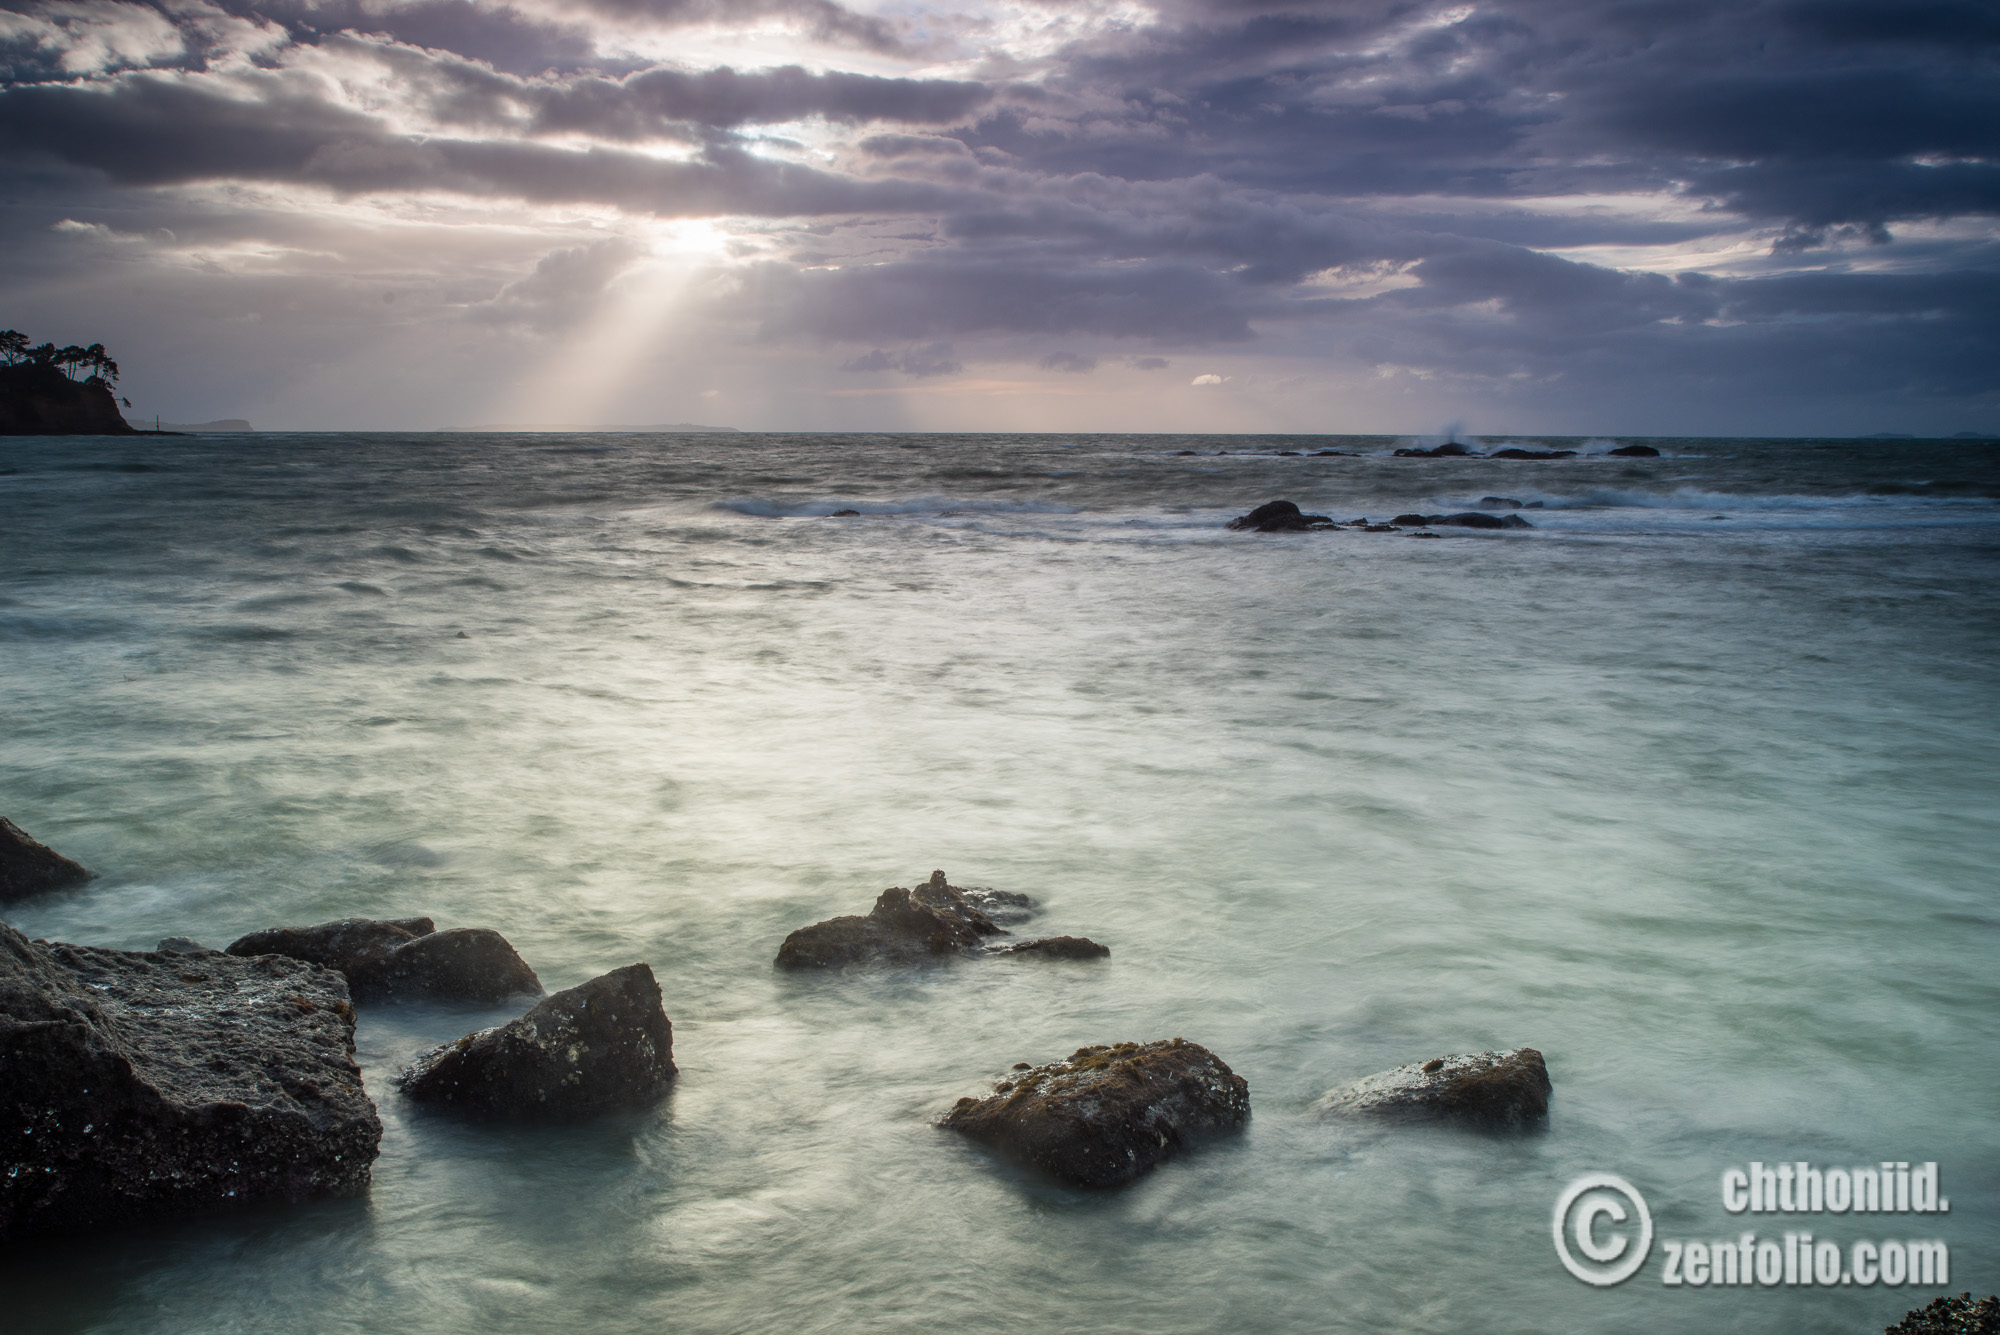 Featured image: A seascape for the shortest day